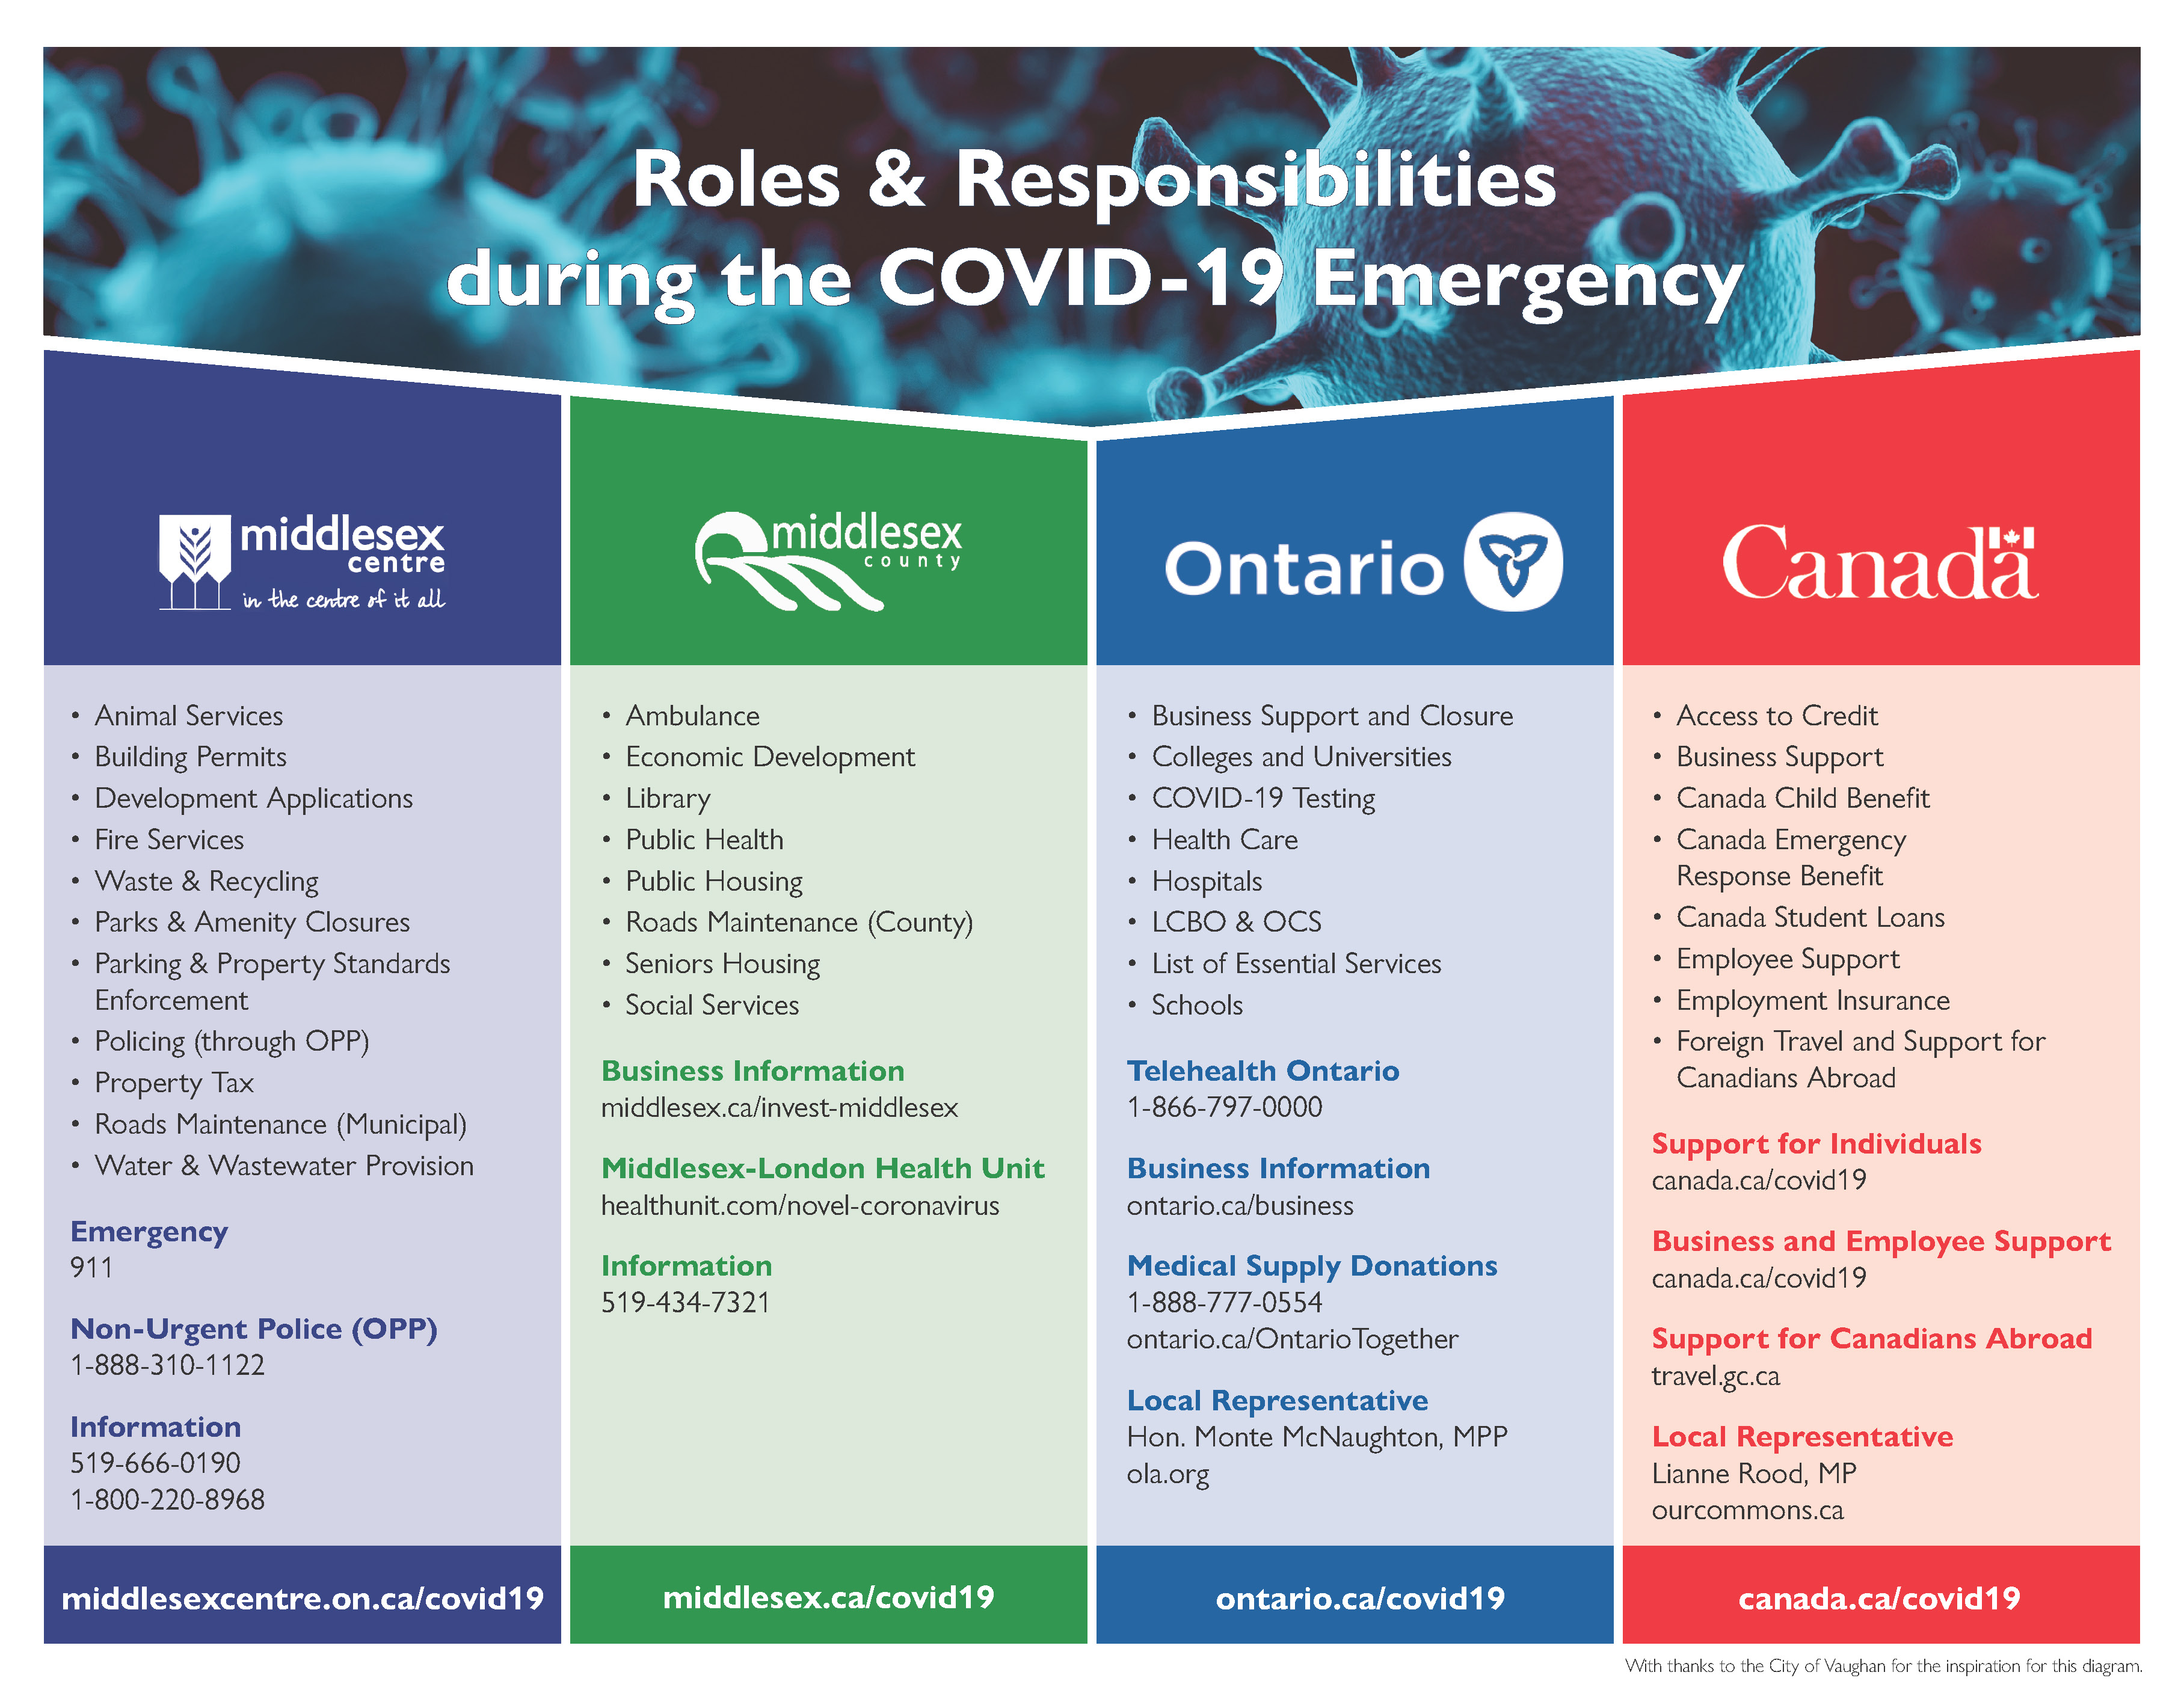 Chart - Roles and Responsibilities during the COVID-19 Emergency; pdf version available.